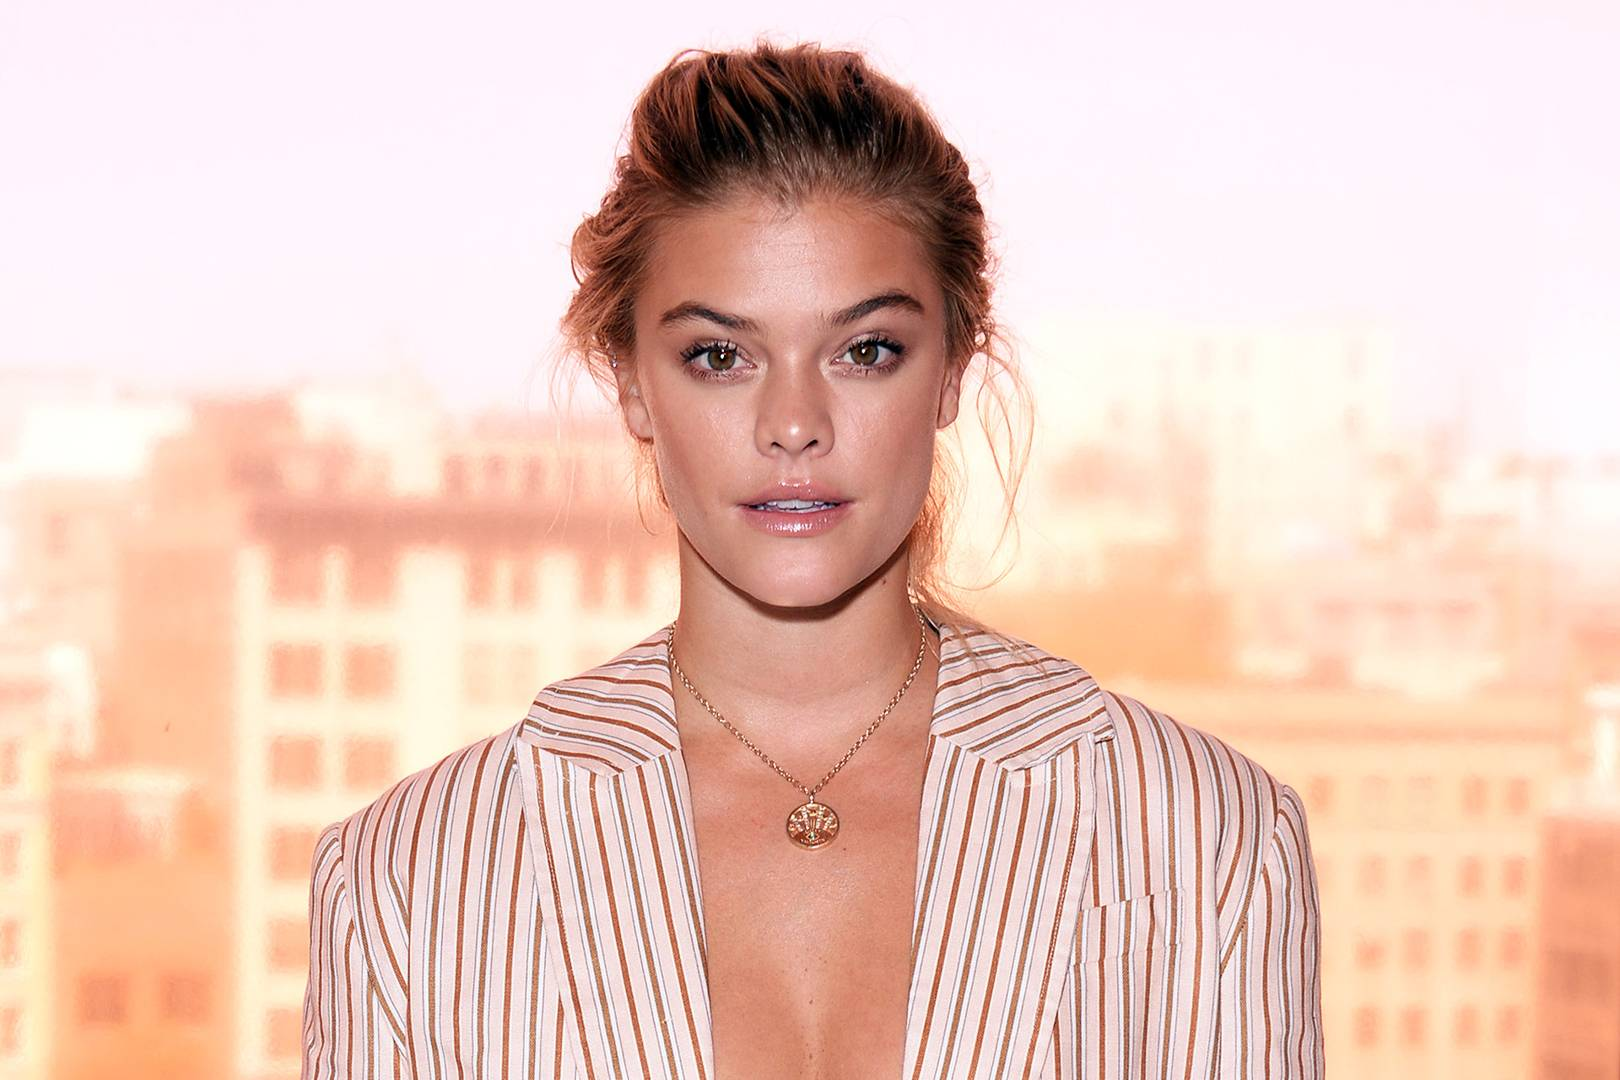 Nina Agdal says she was body shamed by a magazine & her response was PERFECT